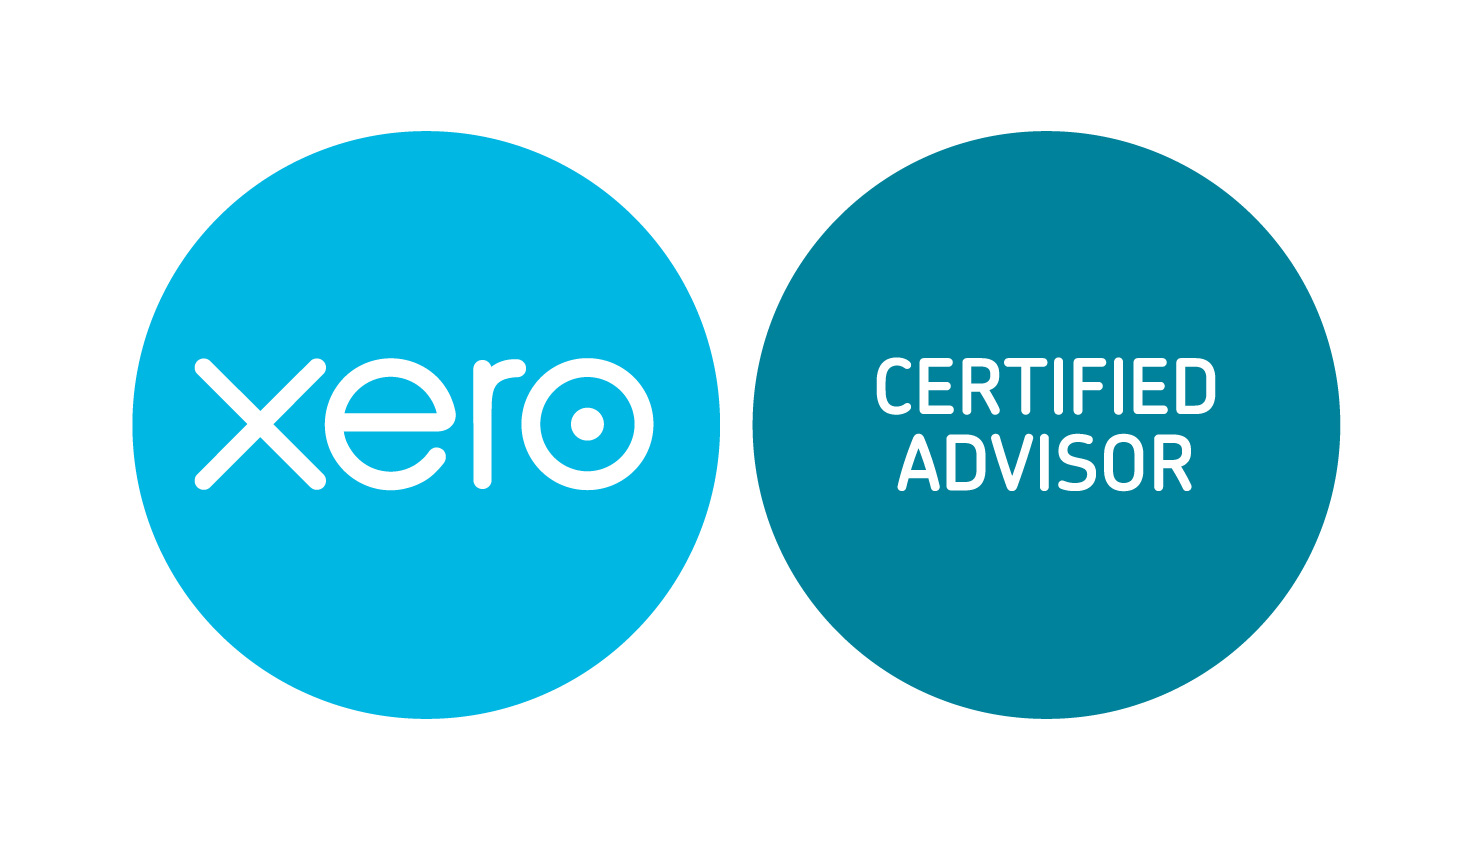 Xero Experts - We love Xero software - come and find out why!